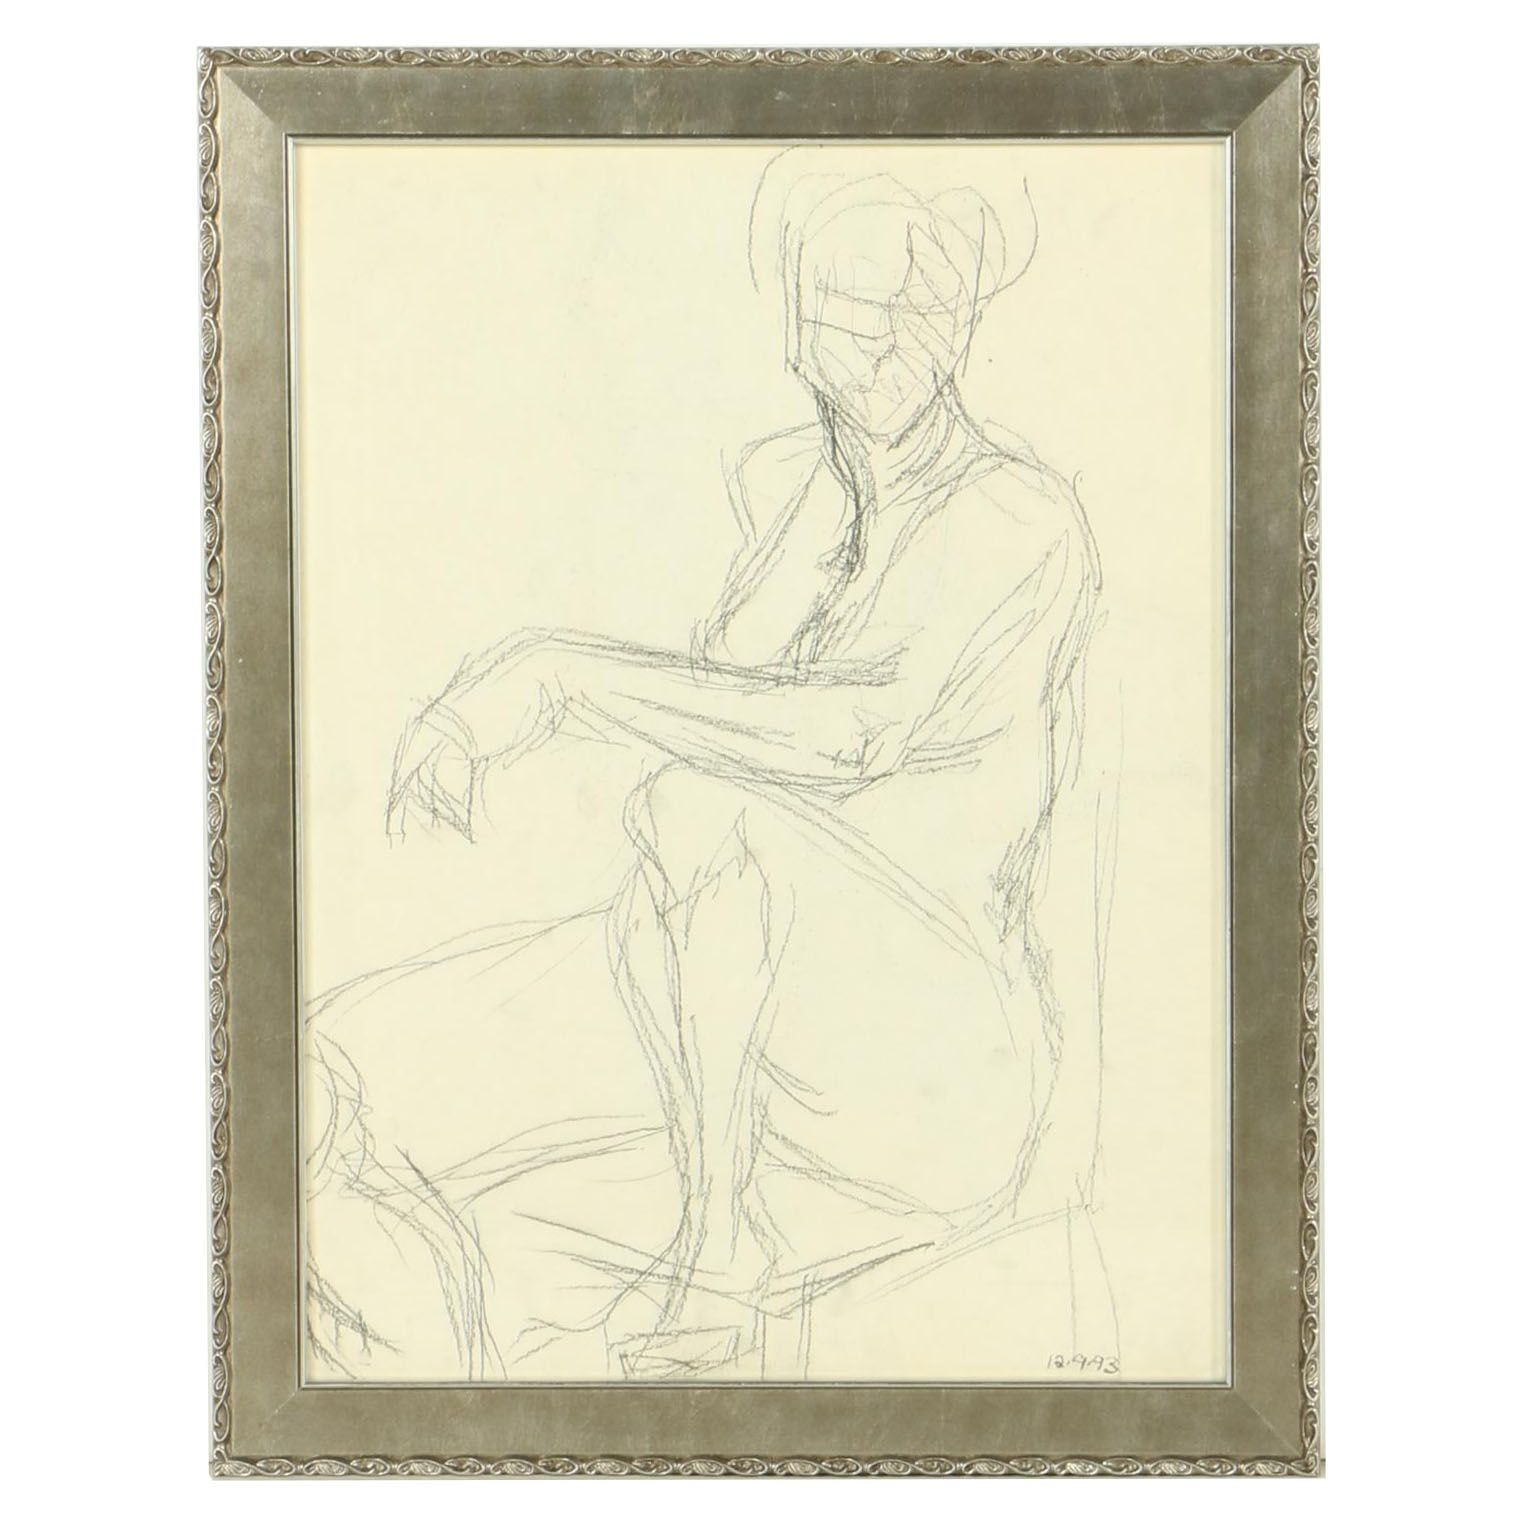 Framed Charcoal Drawing of a Seated Figure